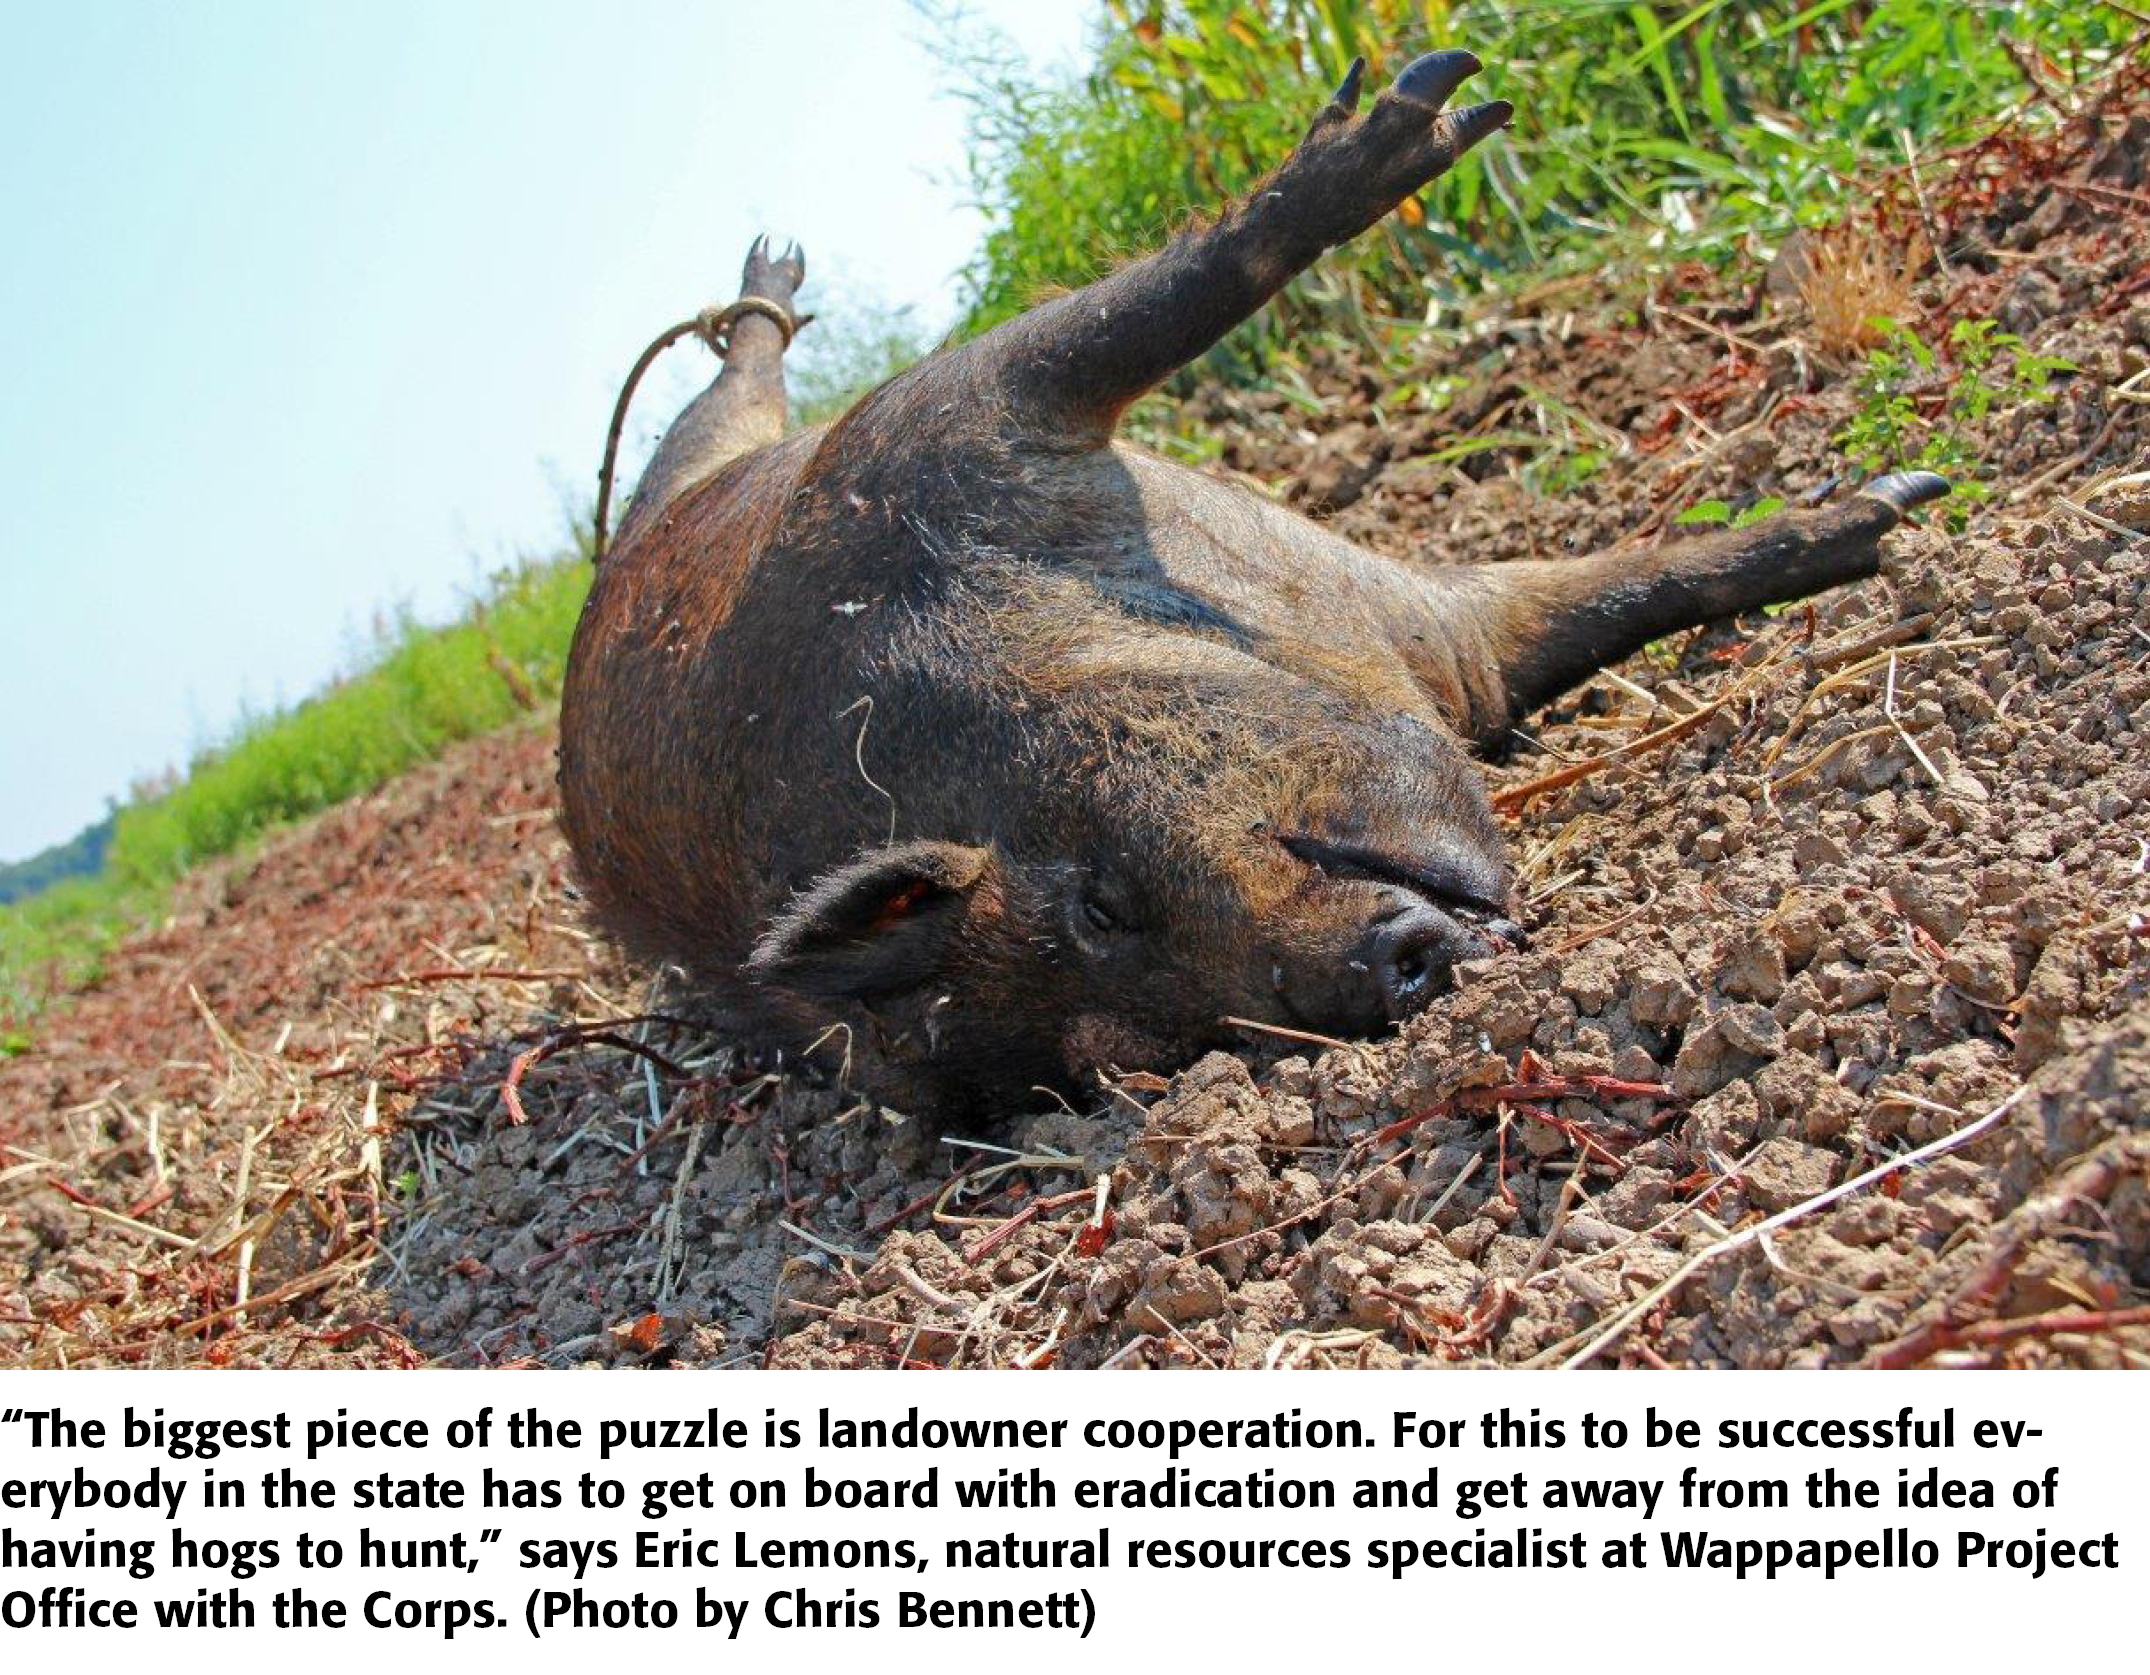 Wild Pig Wars: Controversy Over Hunting, Trapping in